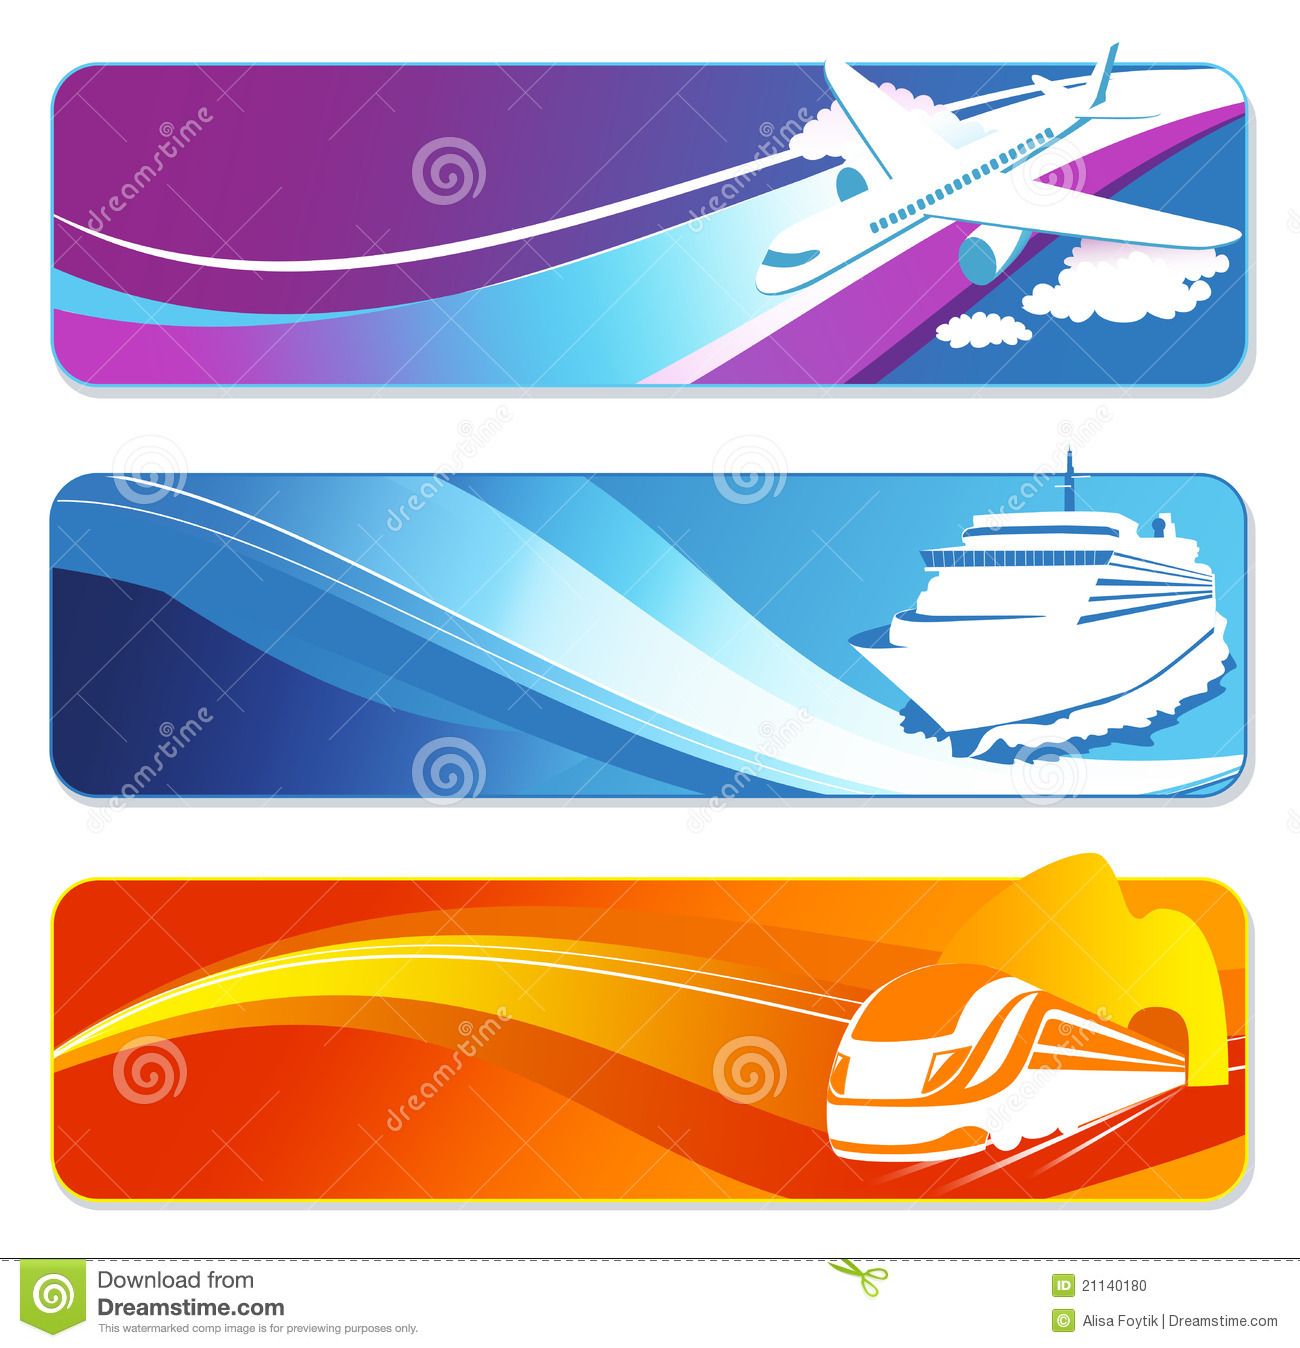 Travel transportation banners set. Vehicles banners.